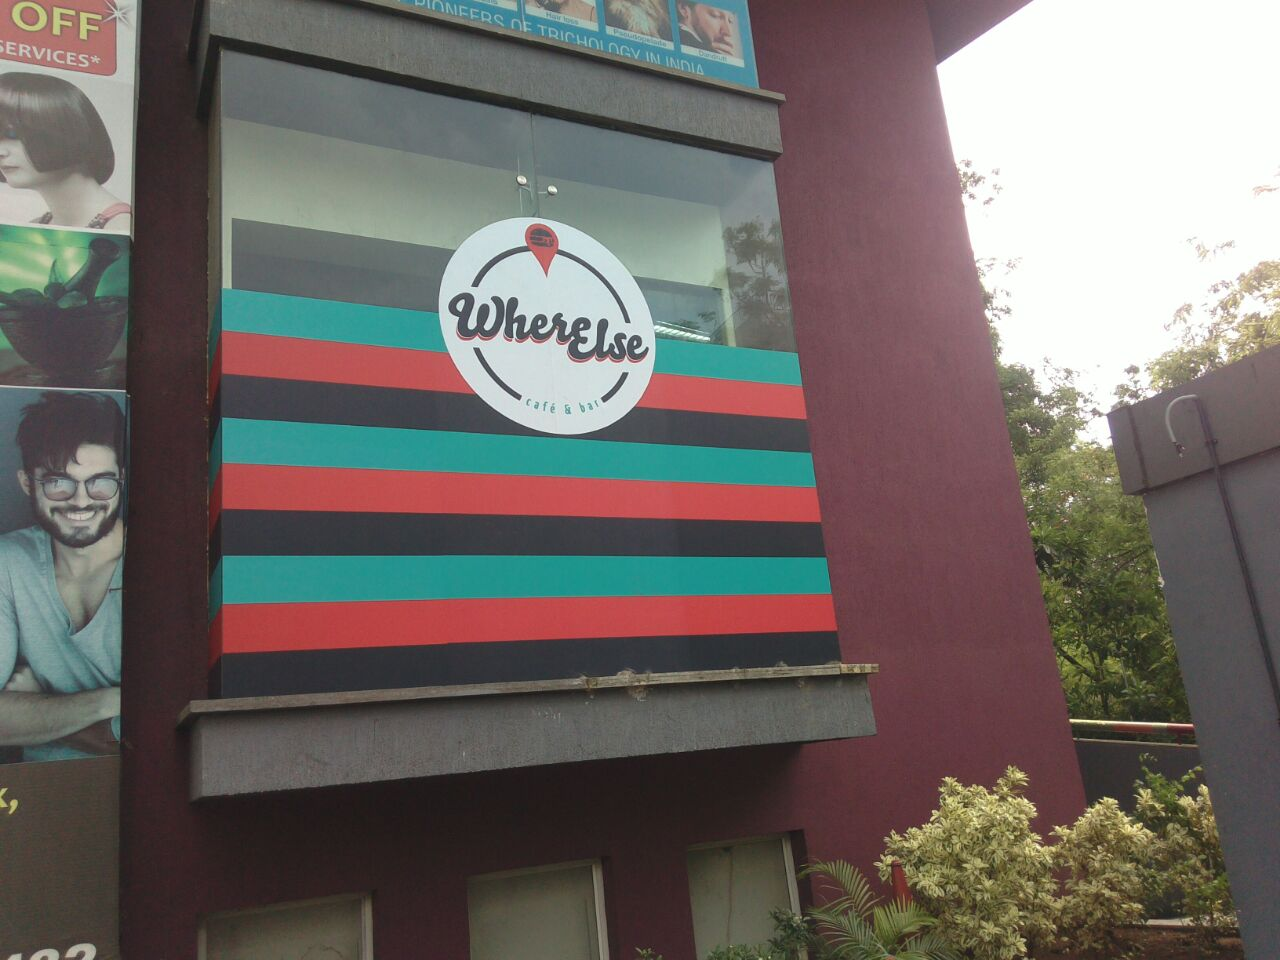 Huge logo of the Where Else Café printed on a film and pasted on the glass frontage of the building